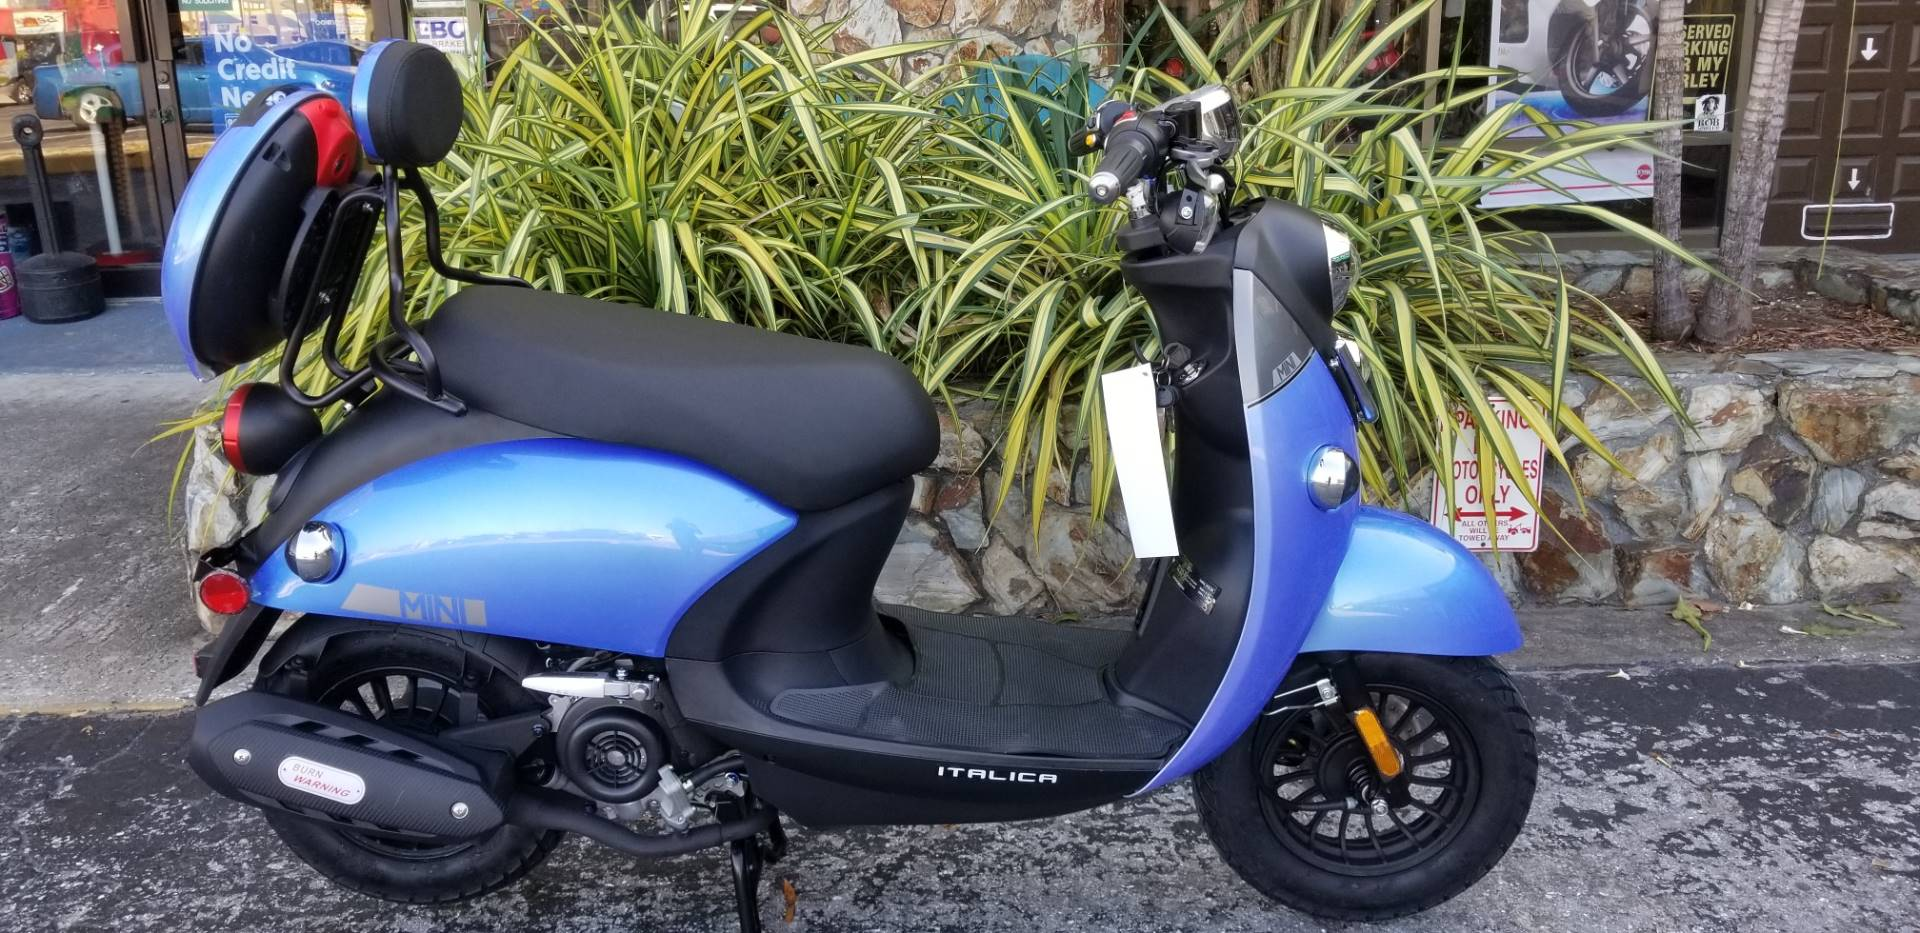 2021 Italica Motors Mini 50cc in Largo, Florida - Photo 1